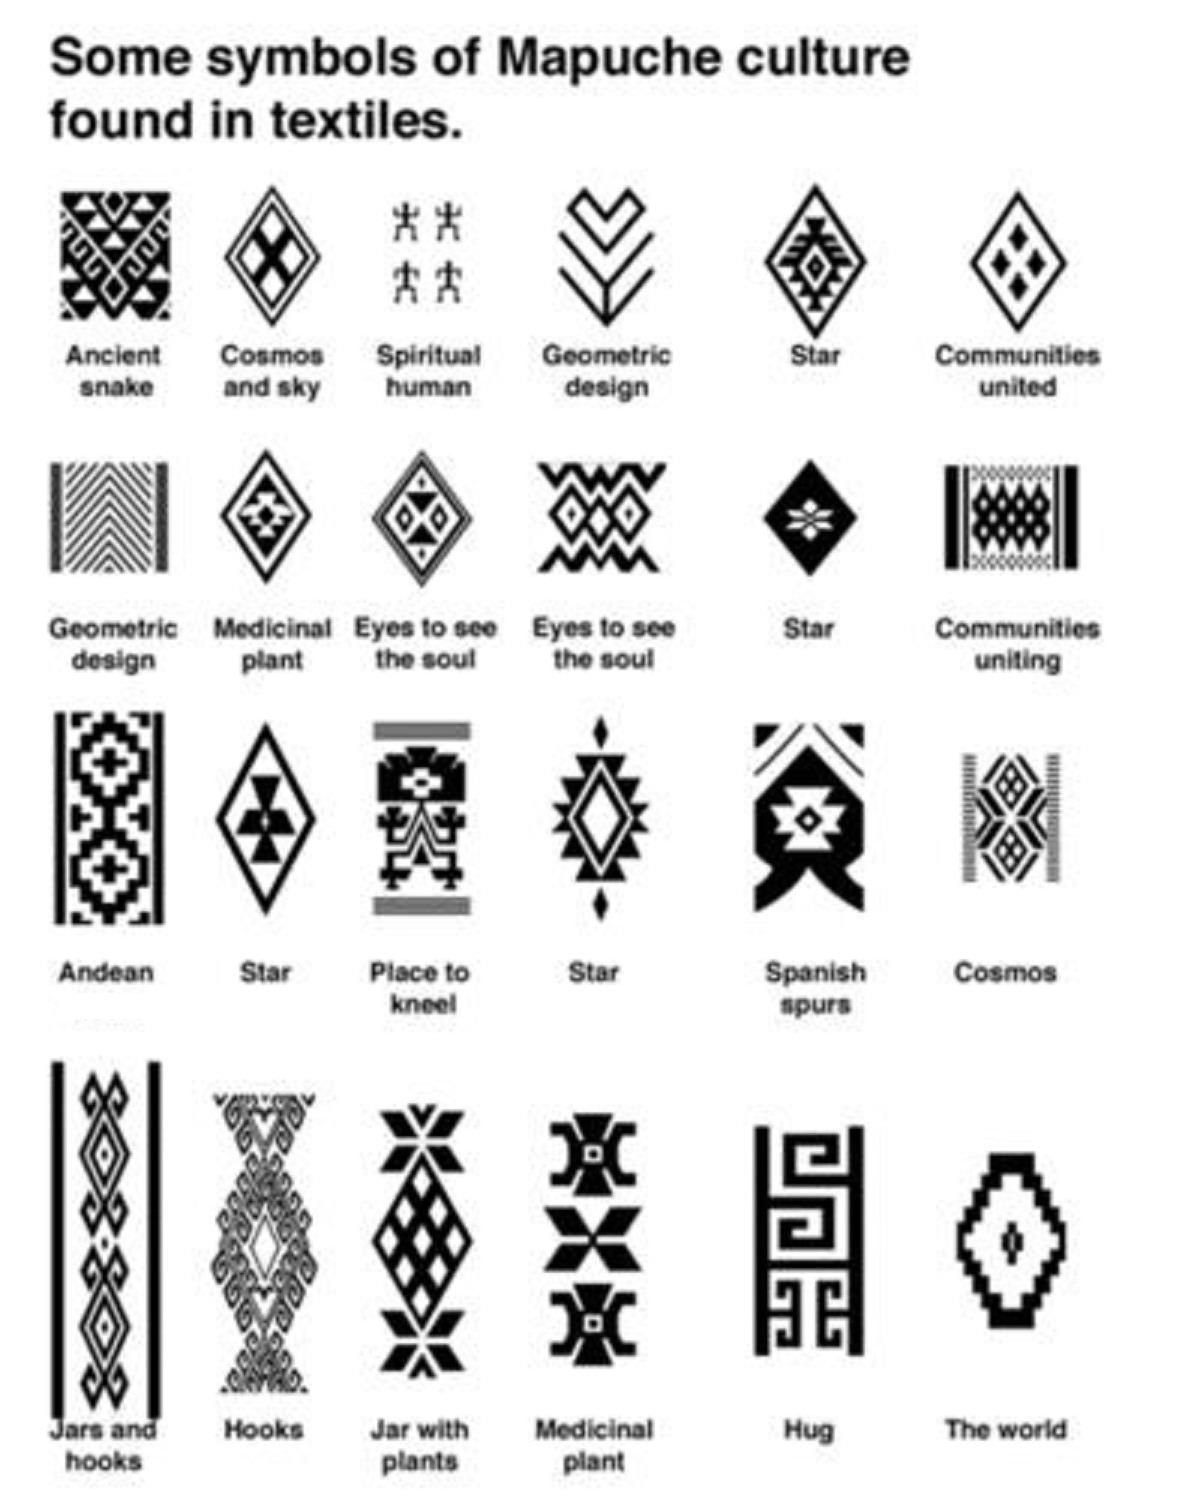 Rw mapuche symbols commonly found on textiles pinteres rw mapuche symbols commonly found on textiles more biocorpaavc Choice Image